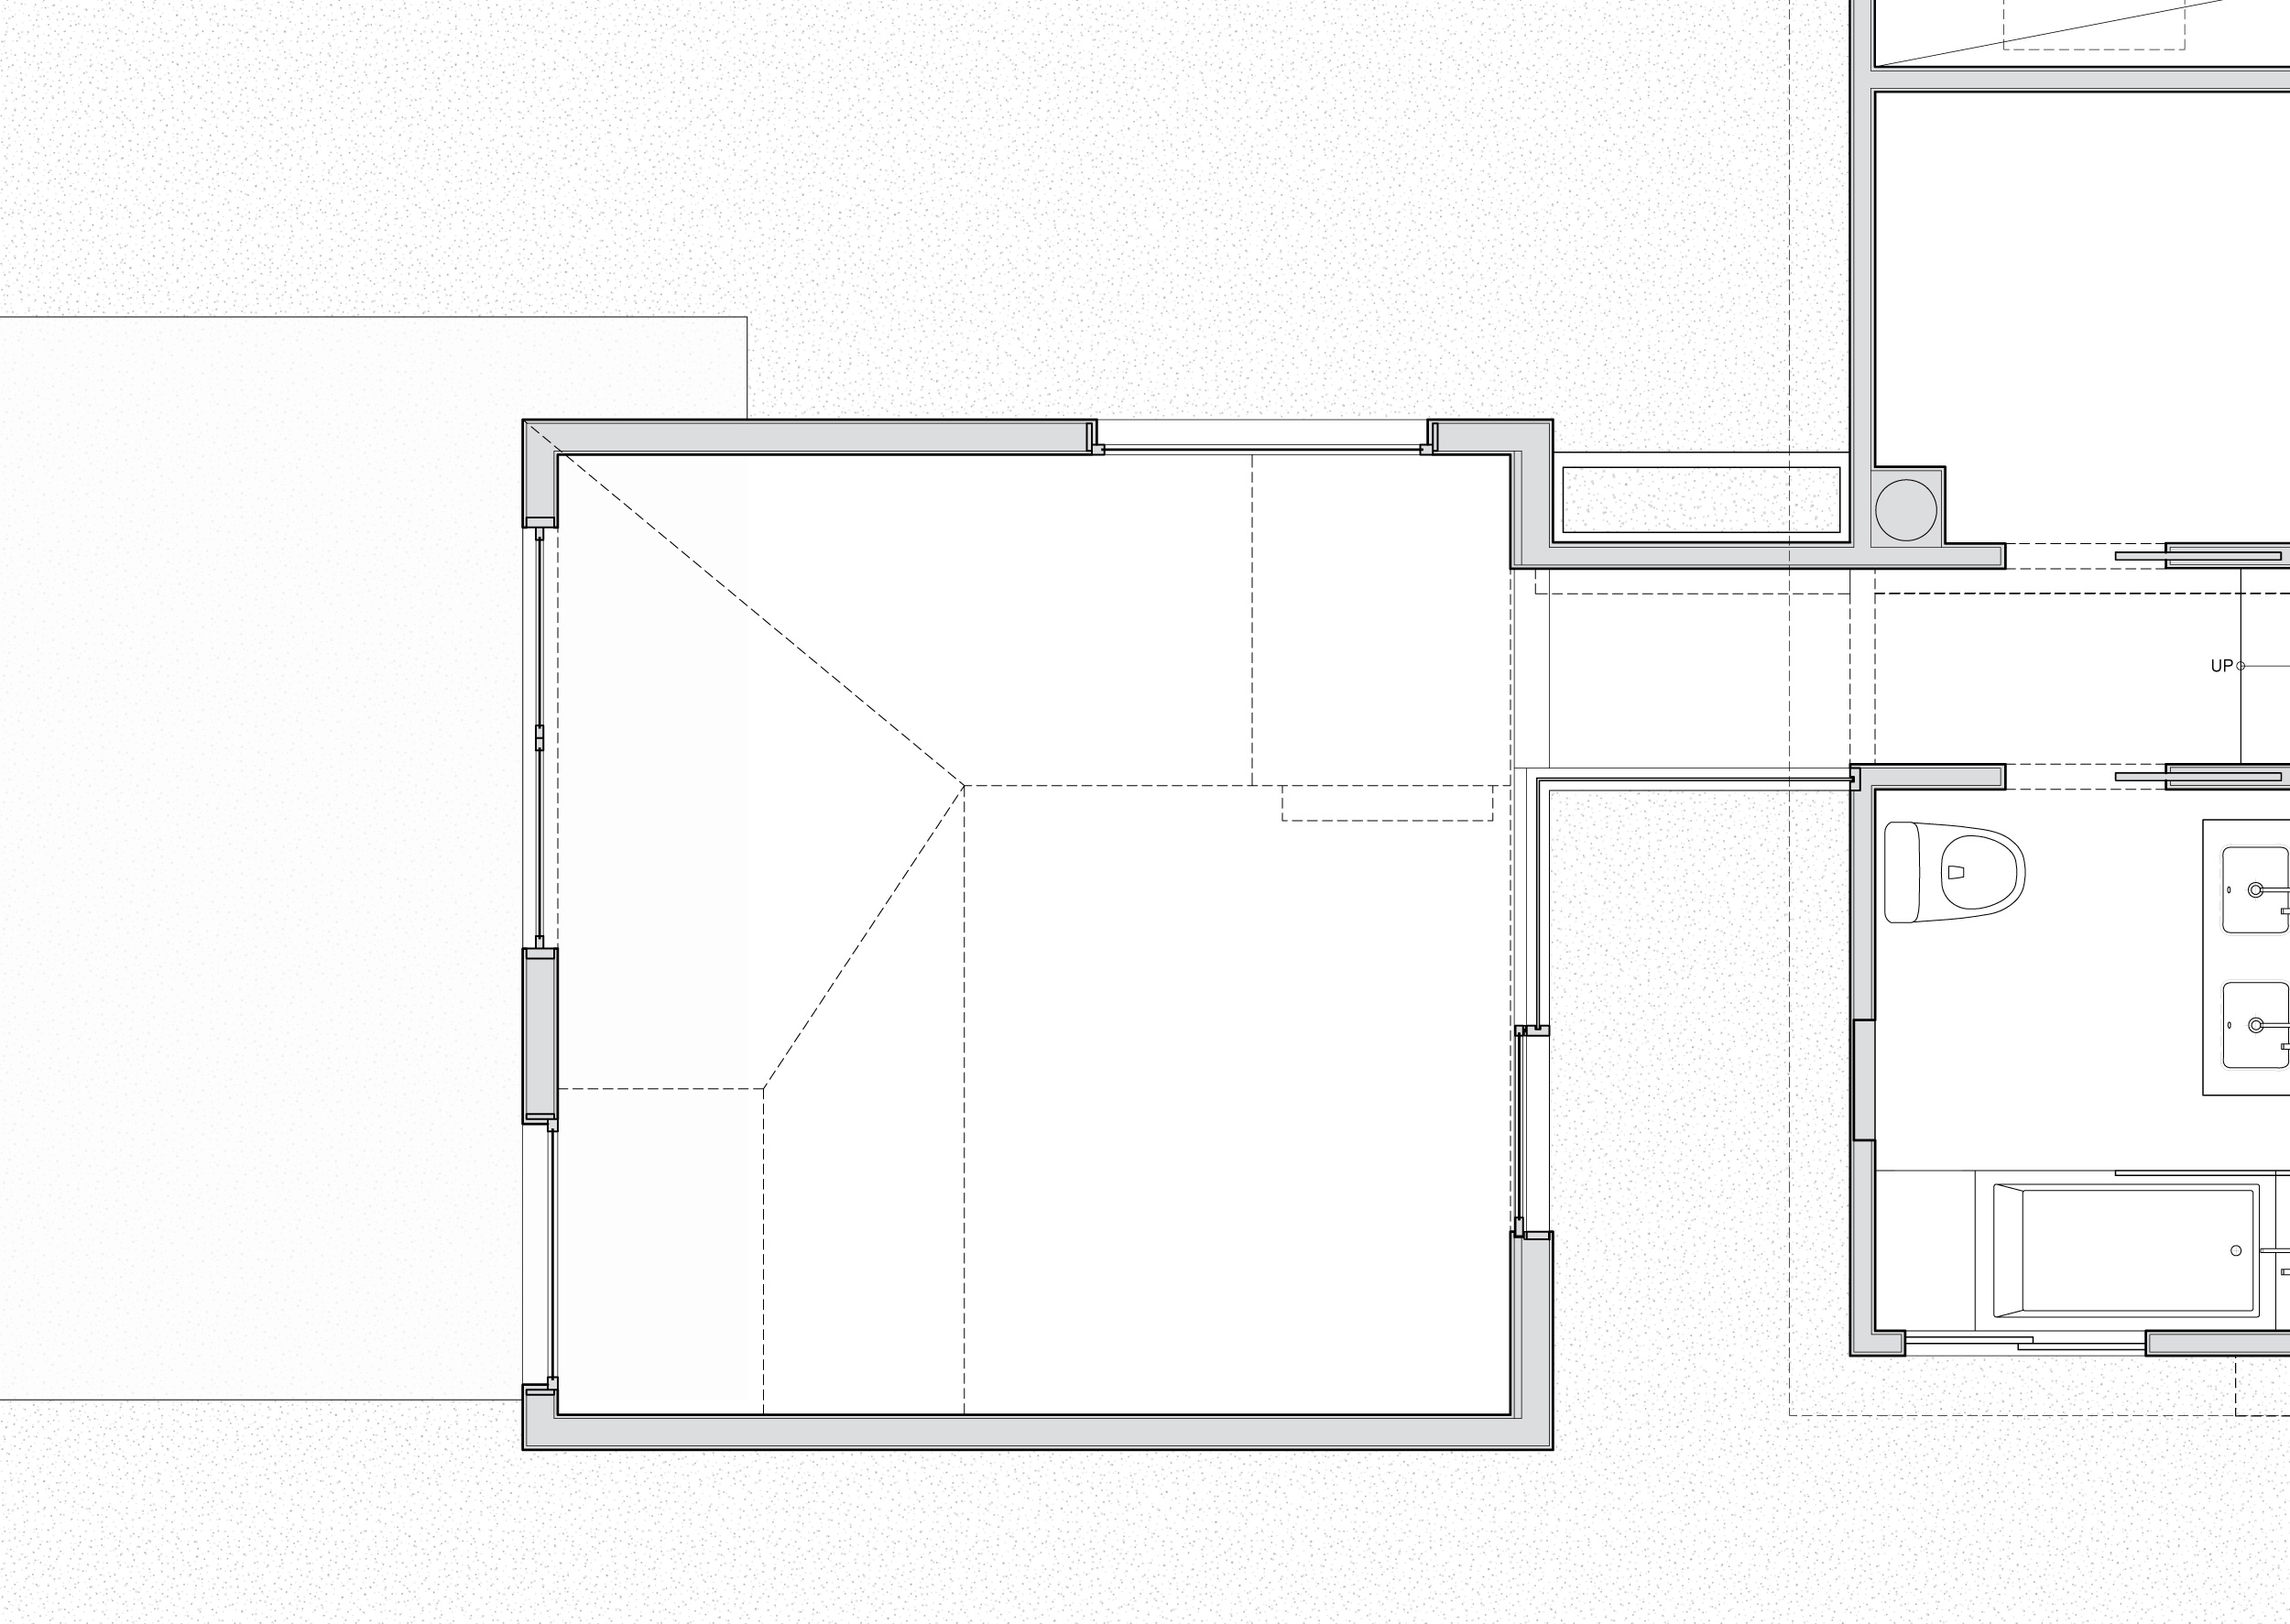 Plan showing the garden court that seperates the house from the addition.